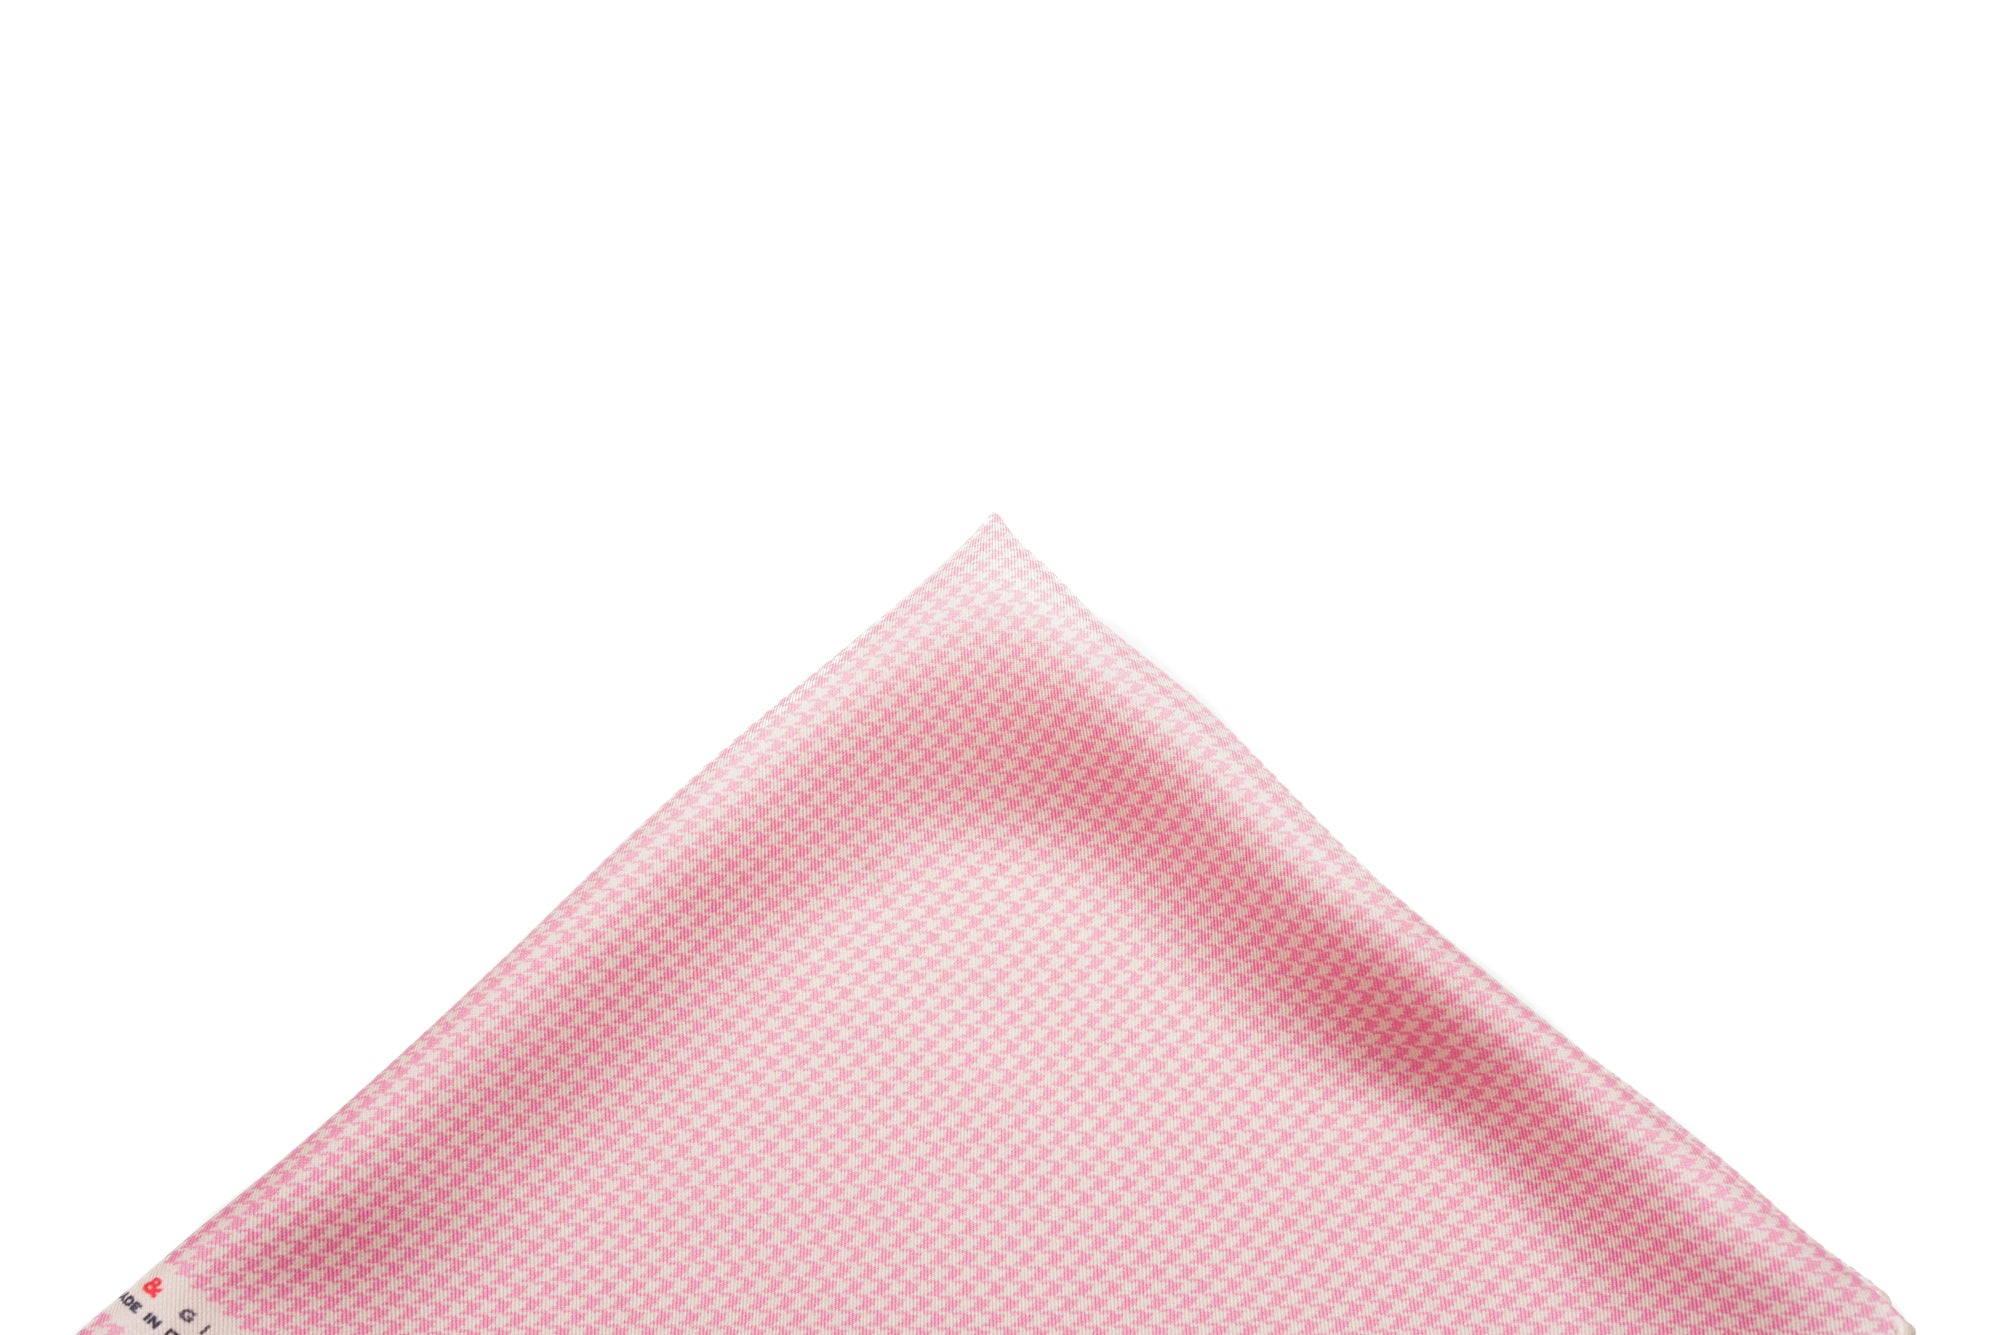 Pocket Square Cream/Pink Micro Houndstooth